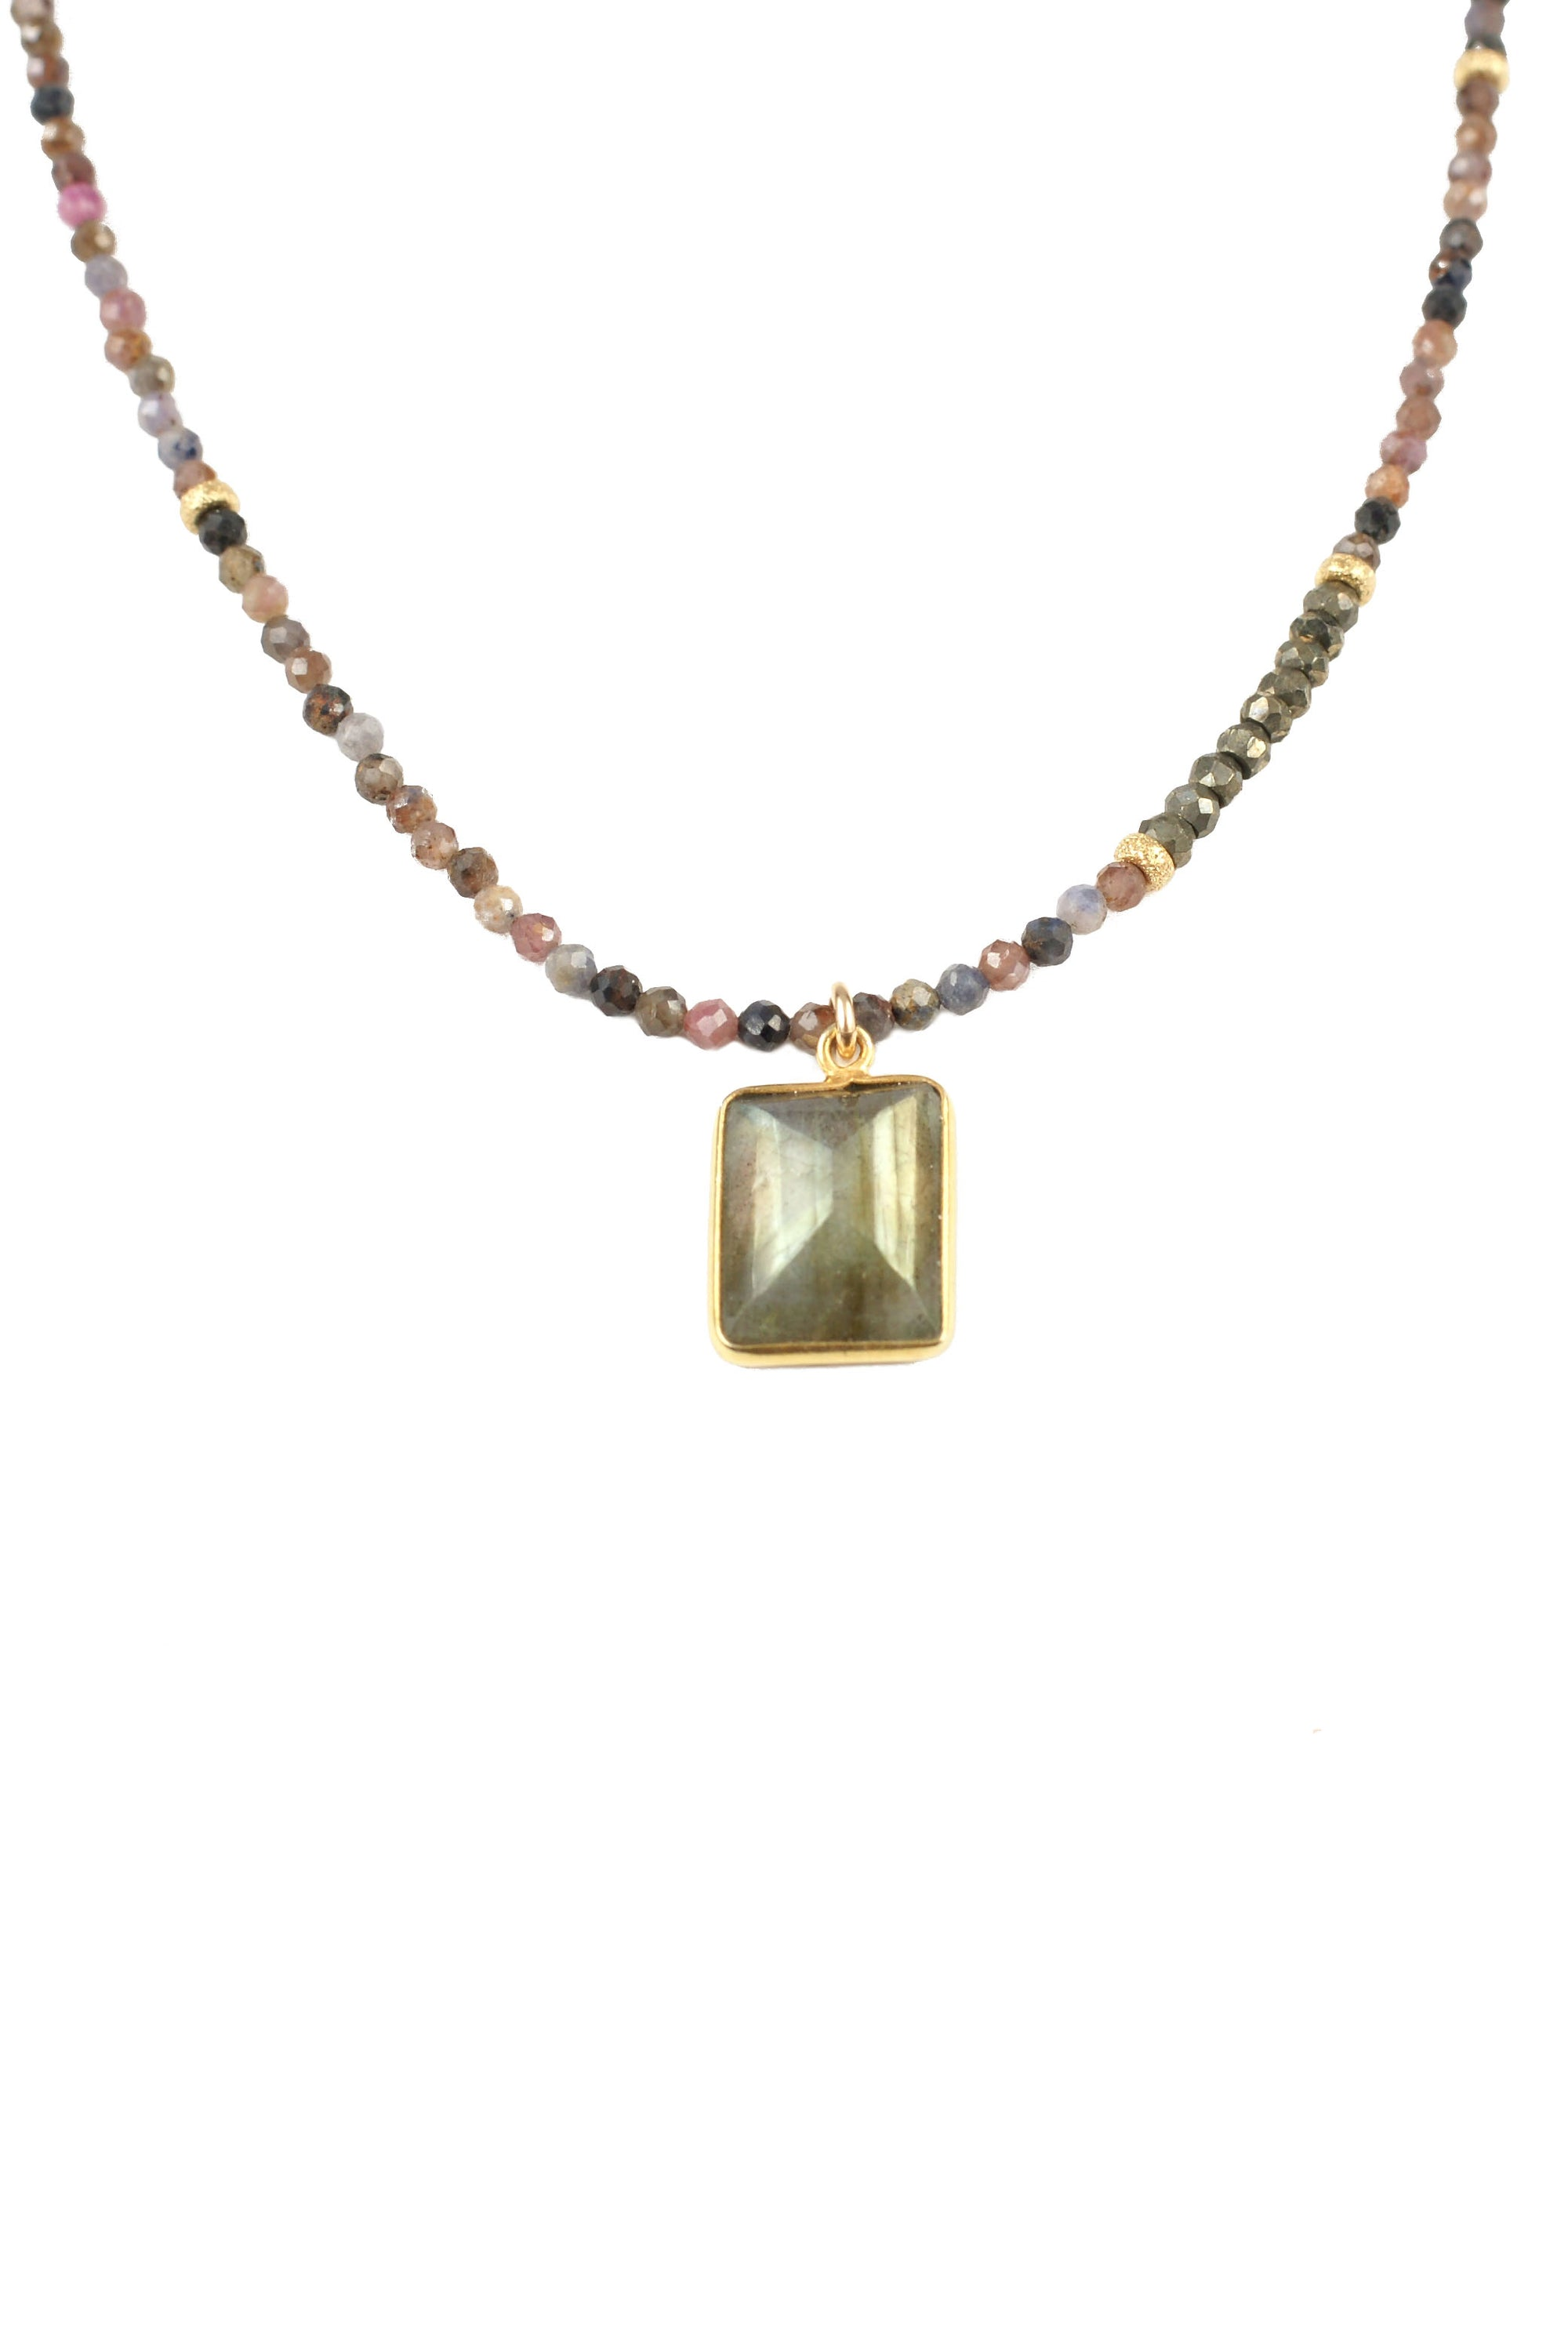 Ruby Sapphire Labradorite Necklace